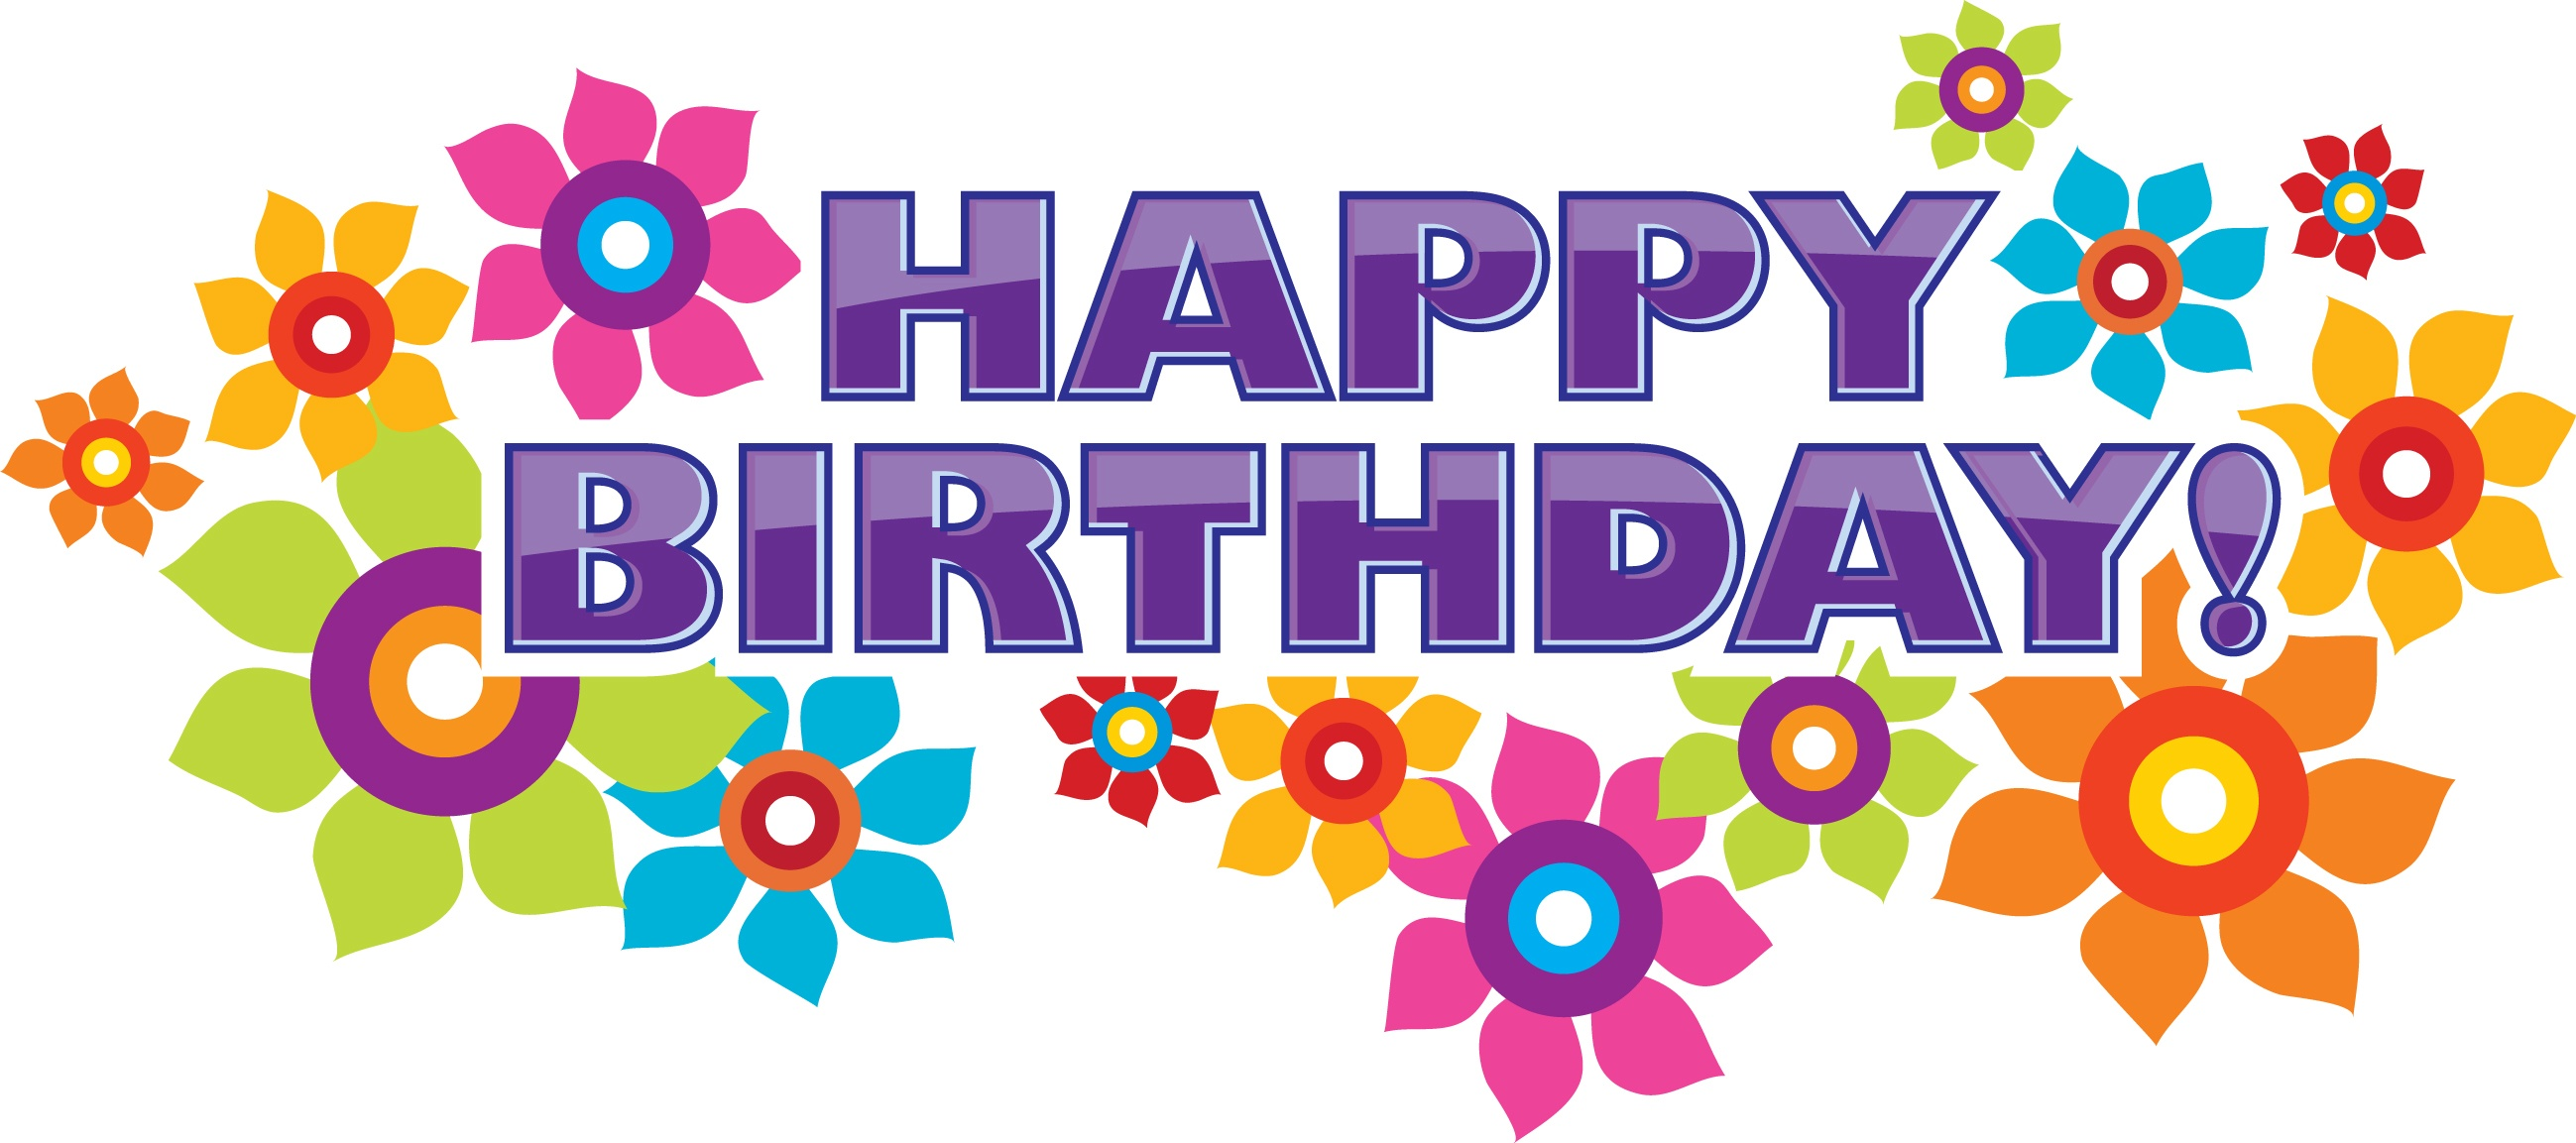 free clip art happy 90th birthday intended for your inspiration.